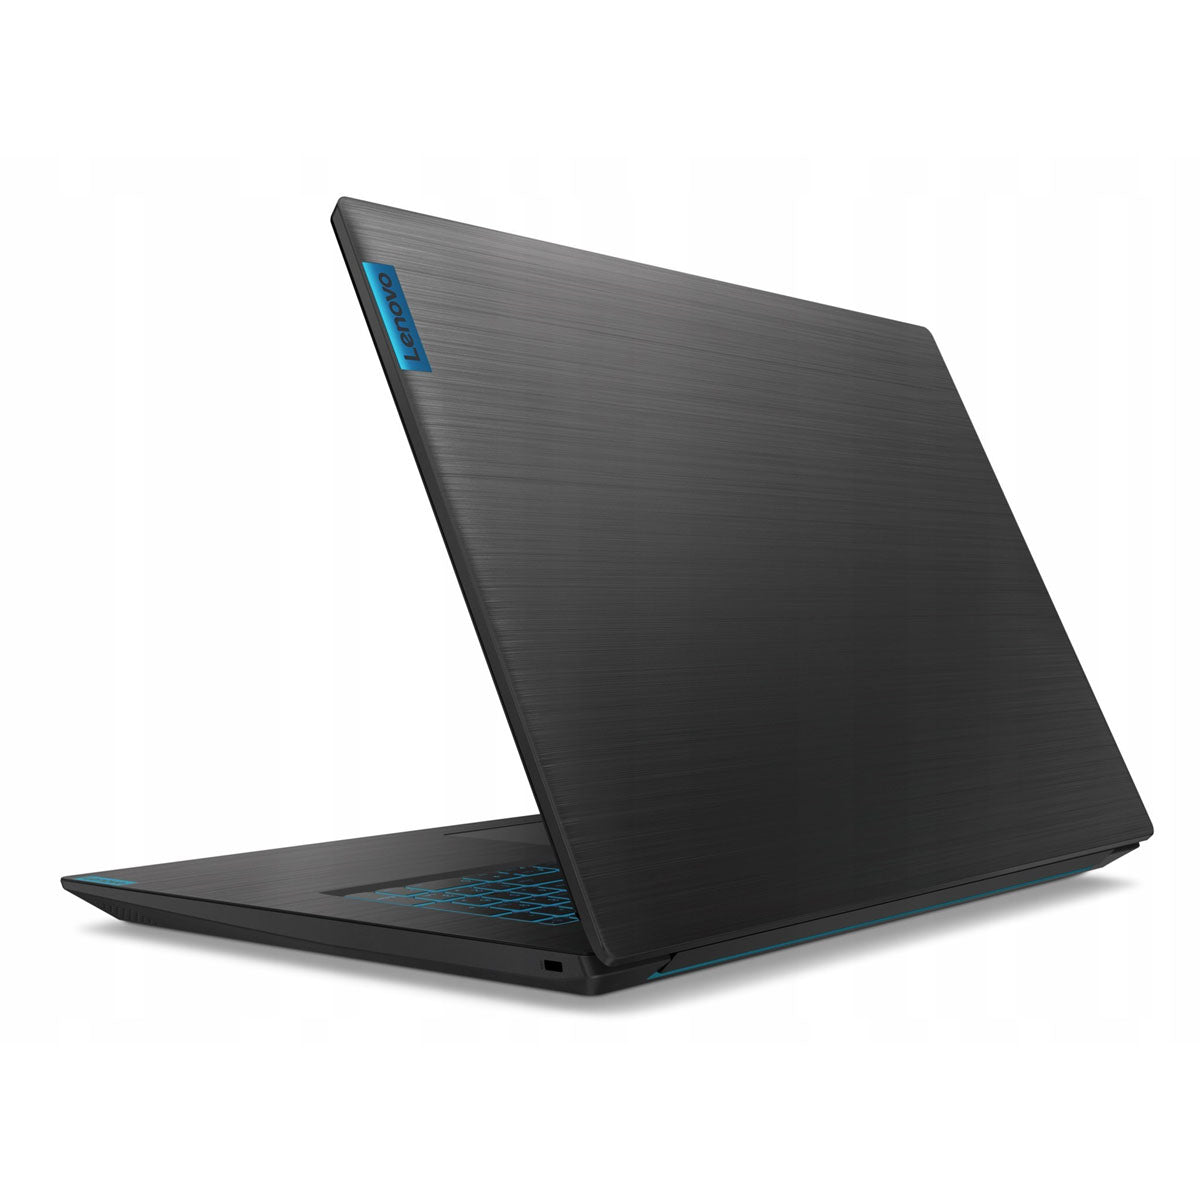 Lenovo L340-15IRH Gaming Laptop 15.6'' FHD, Intel Core i5-9300HF, GTX 1650 4GB GPU, 8GB RAM, 256GB SSD, Windows 10, English Backlit Keyboard, 1 Year Warranty